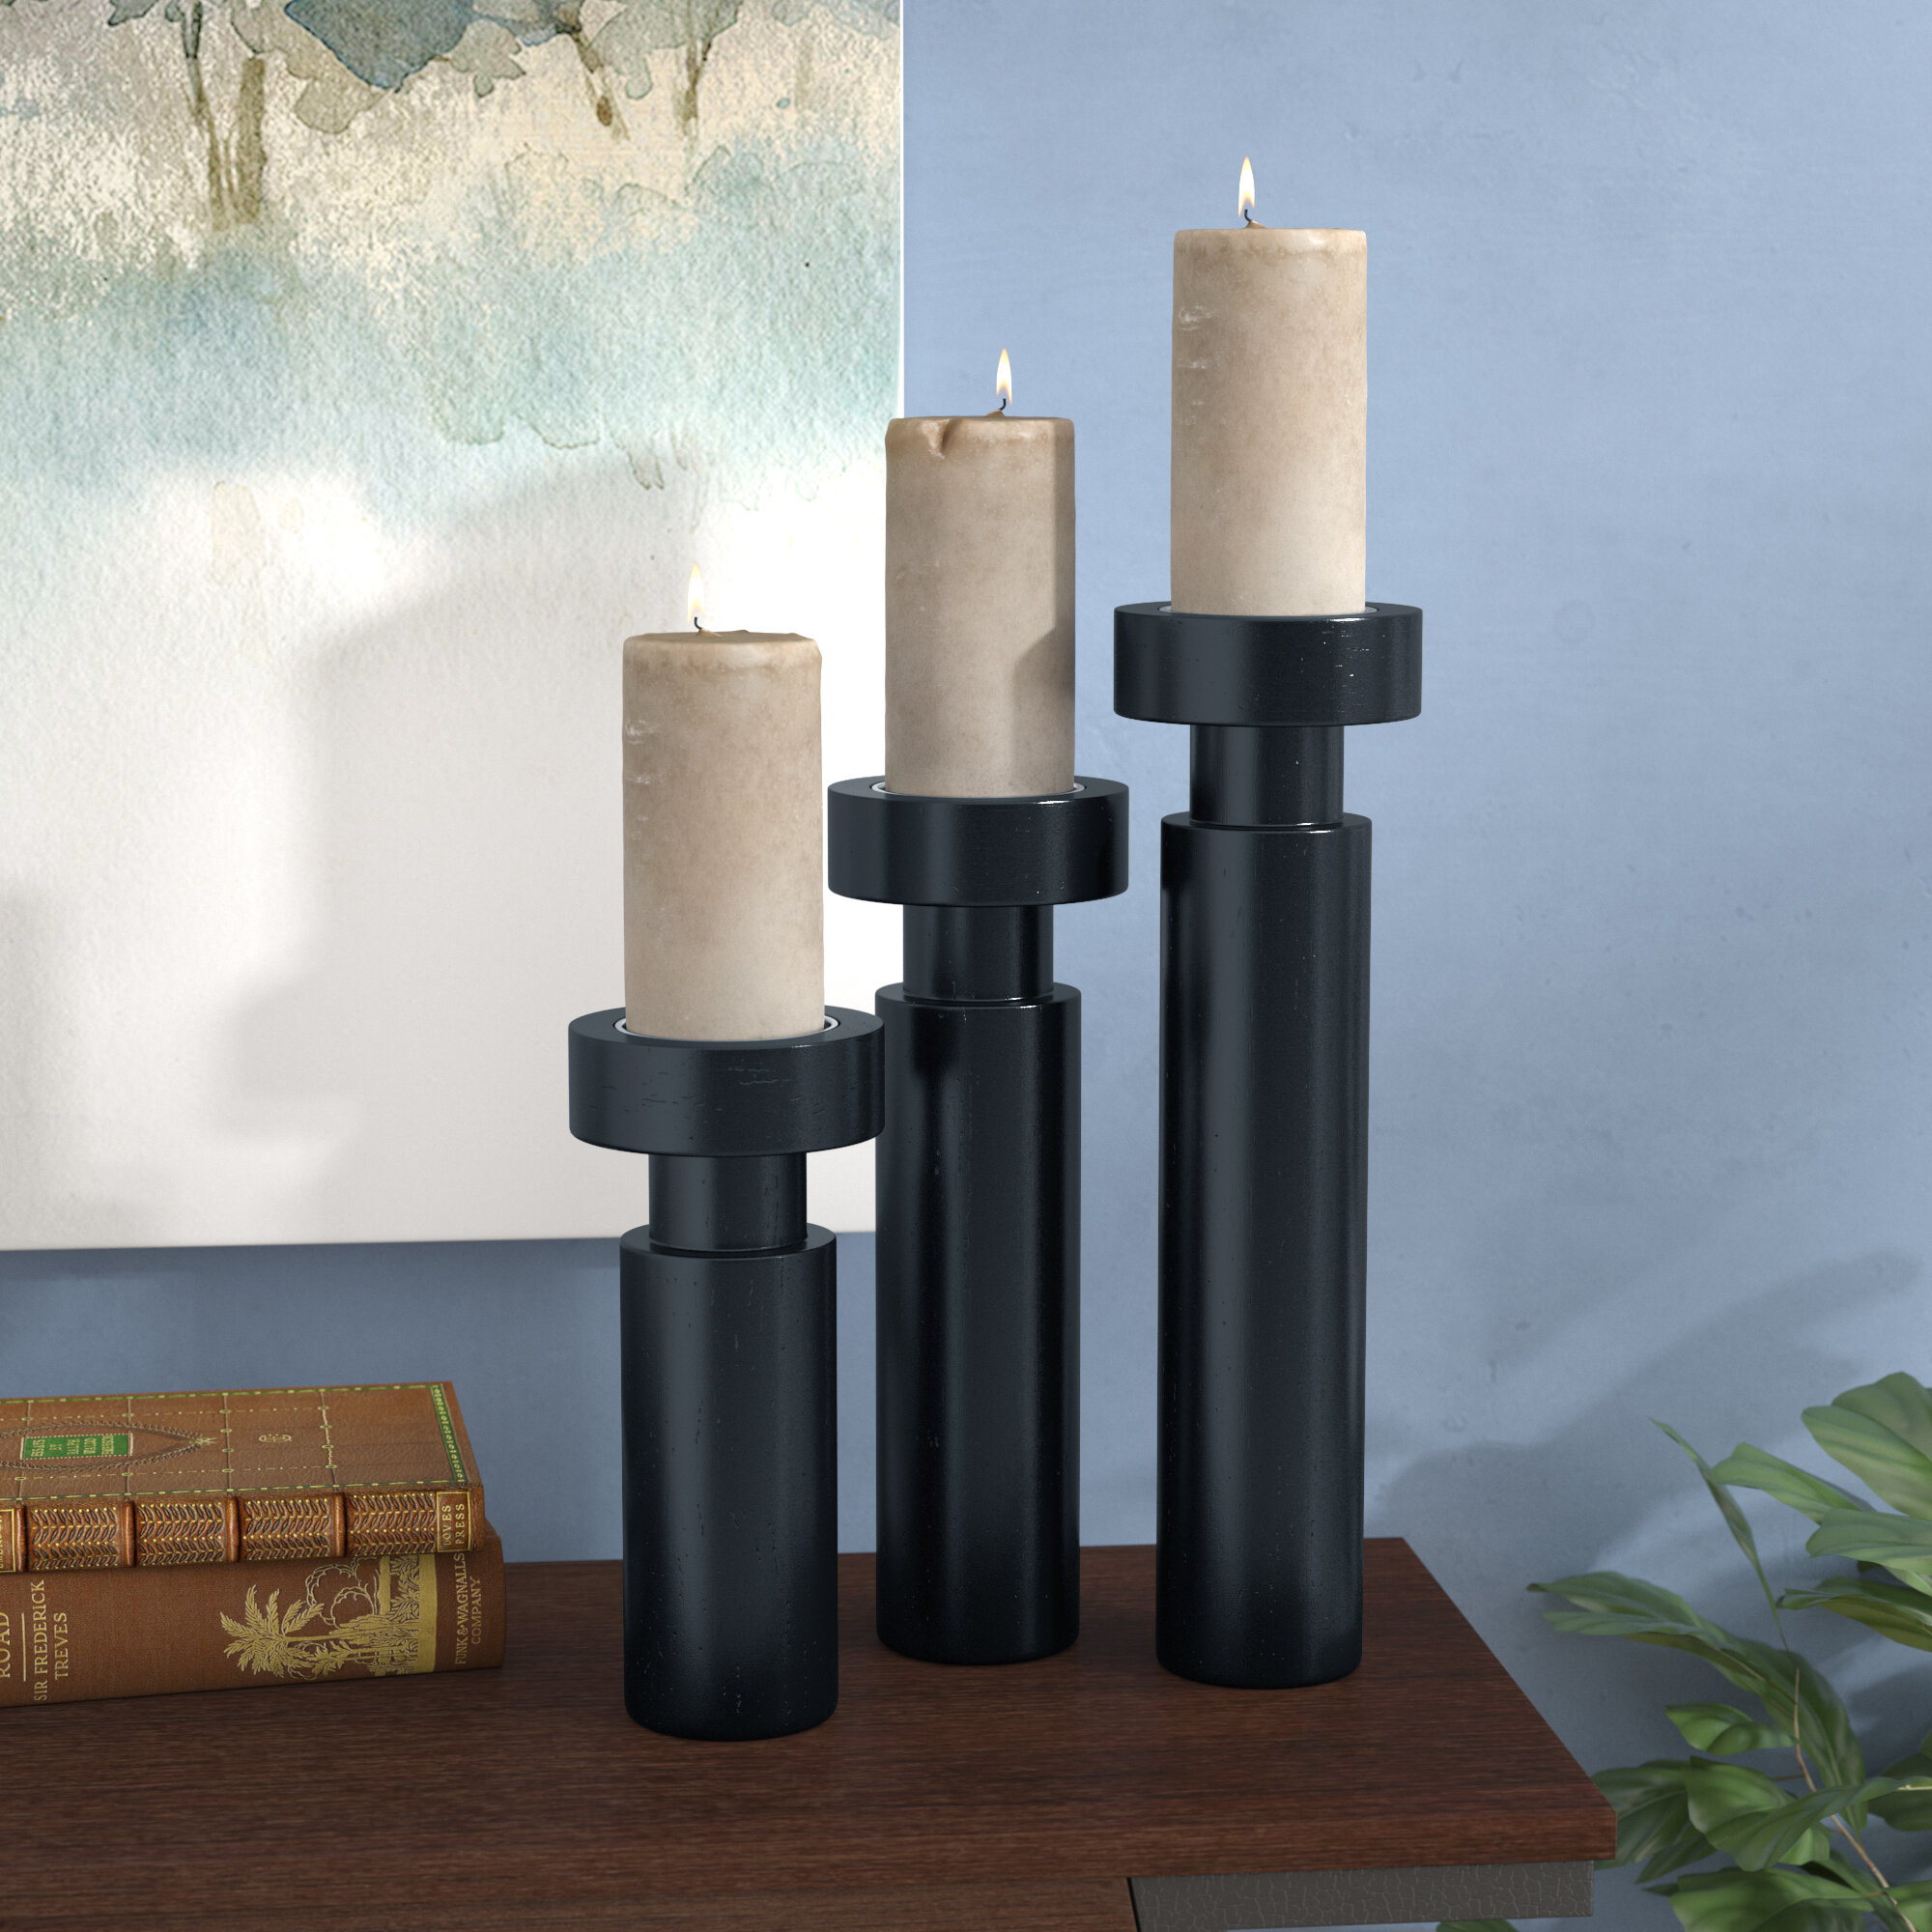 Wayfair Tall Large Wood Candle Holders You Ll Love In 2021